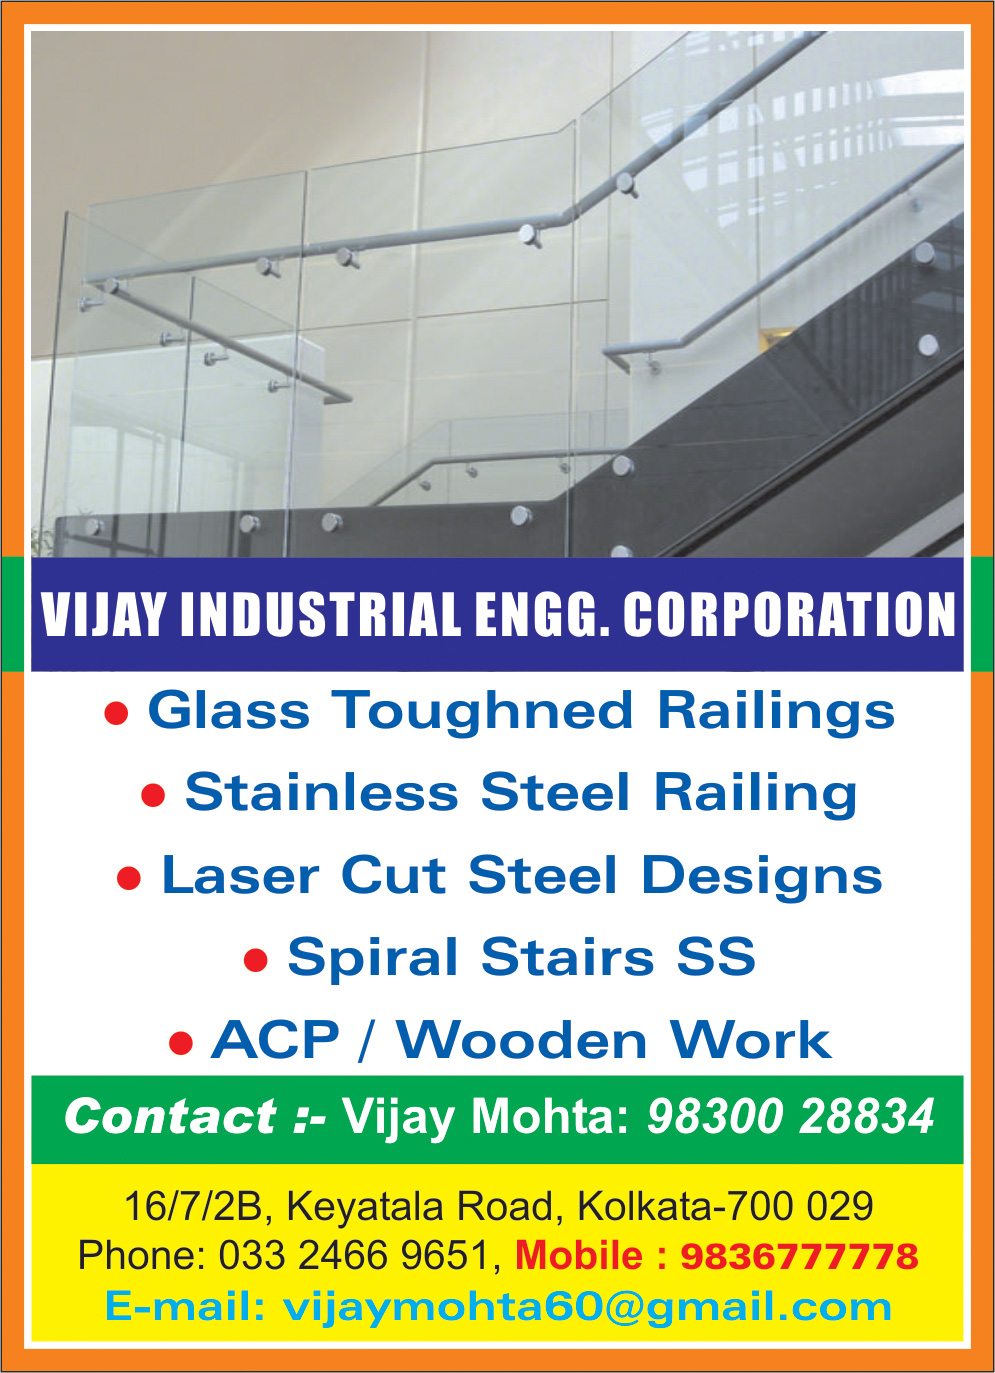 Aluminium Composite Panel Work, VIJAY INDUSTRIAL ENGG CORPORATION, Kolkata,  Yellow Pages, Kolkata, West Bengal